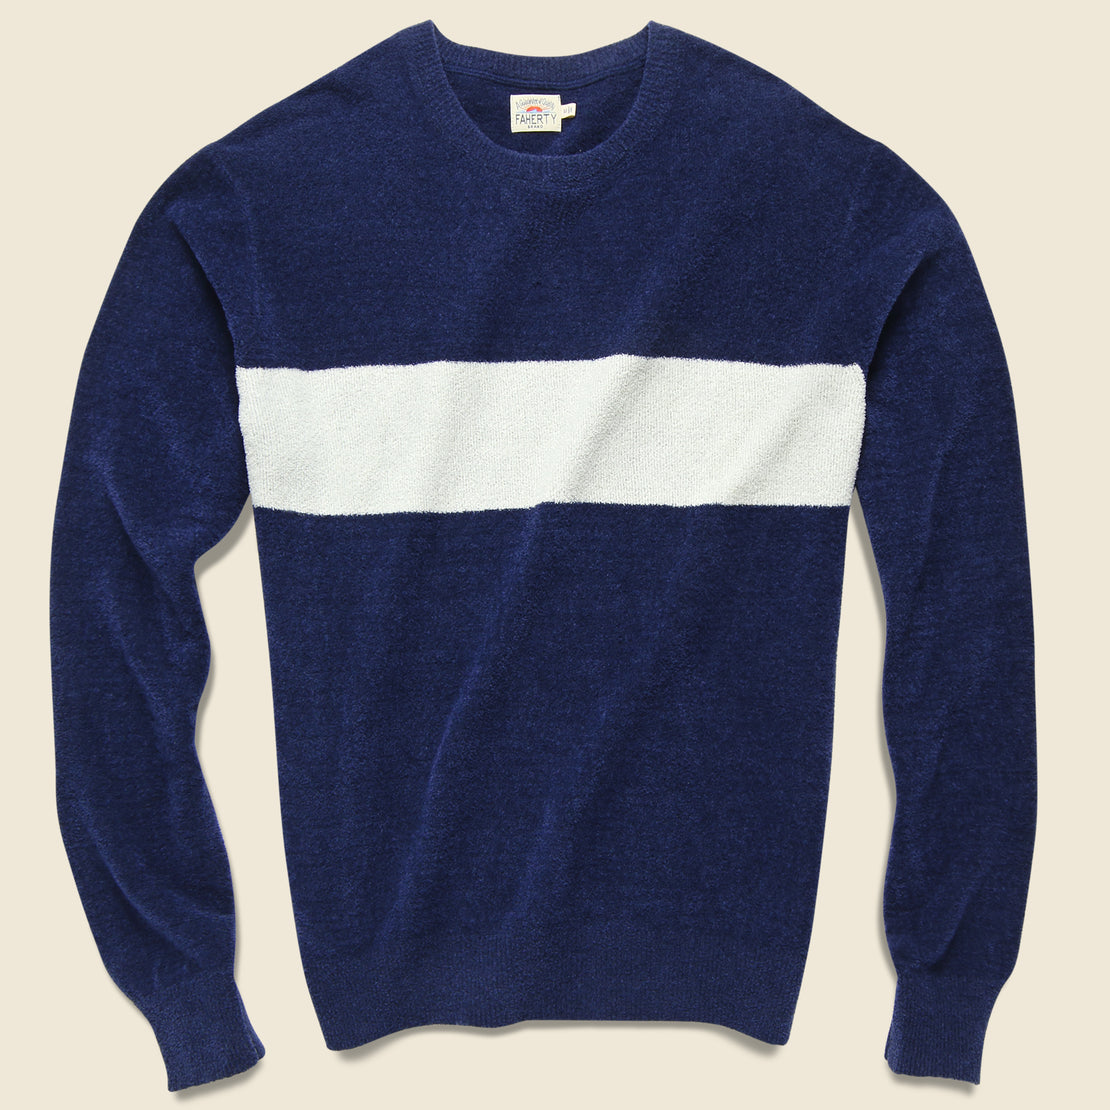 Faherty Coastal Loop Crewneck - Blue Surf Stripe